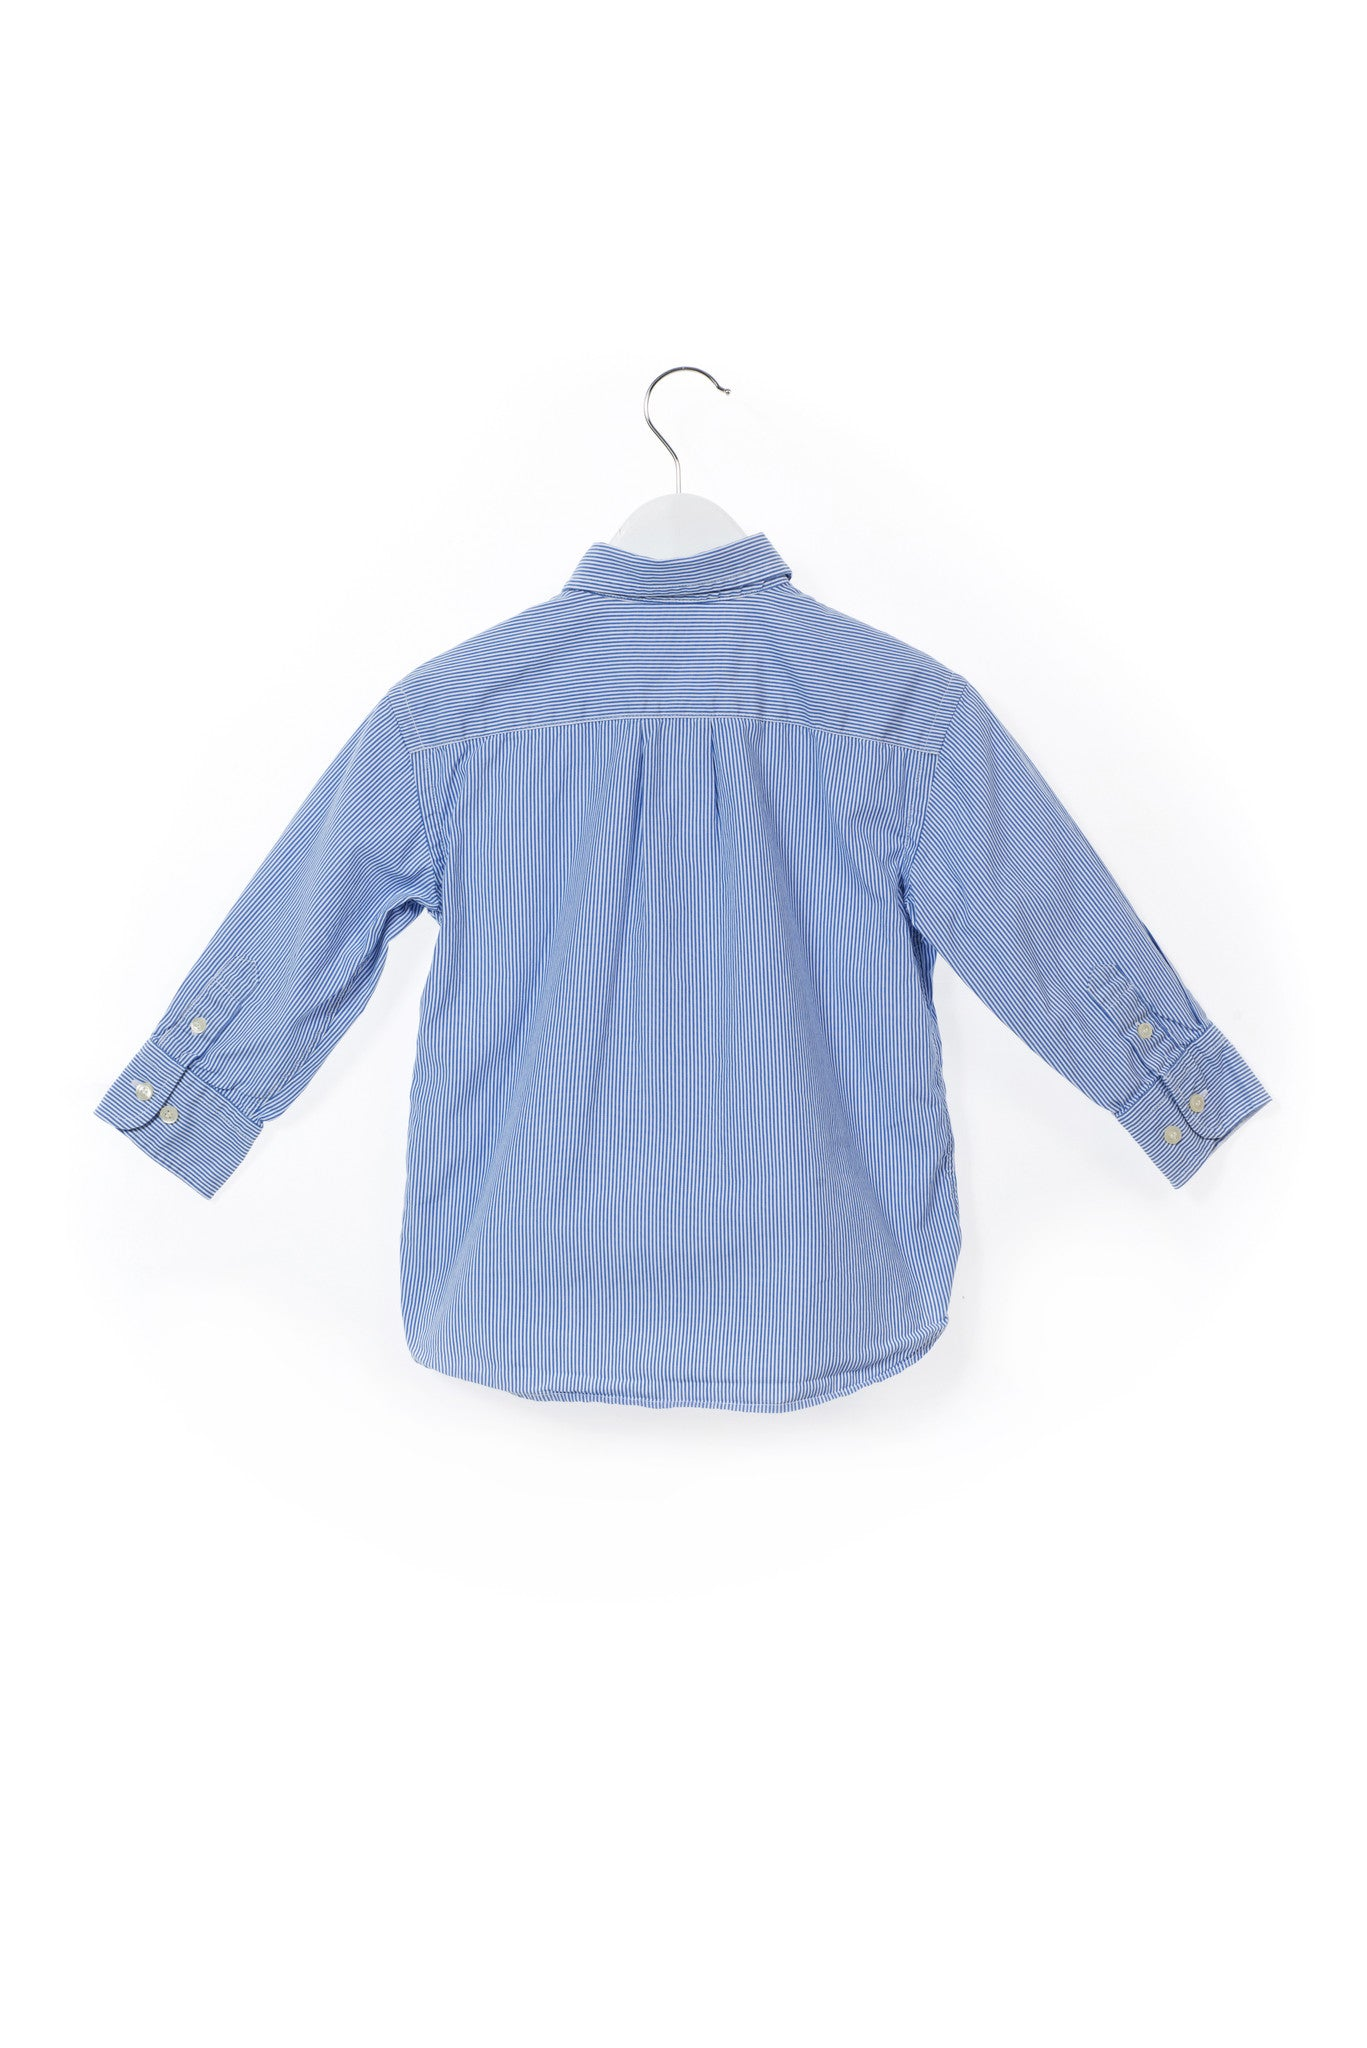 10001160 Crewcuts Kids~Shirt 3T at Retykle